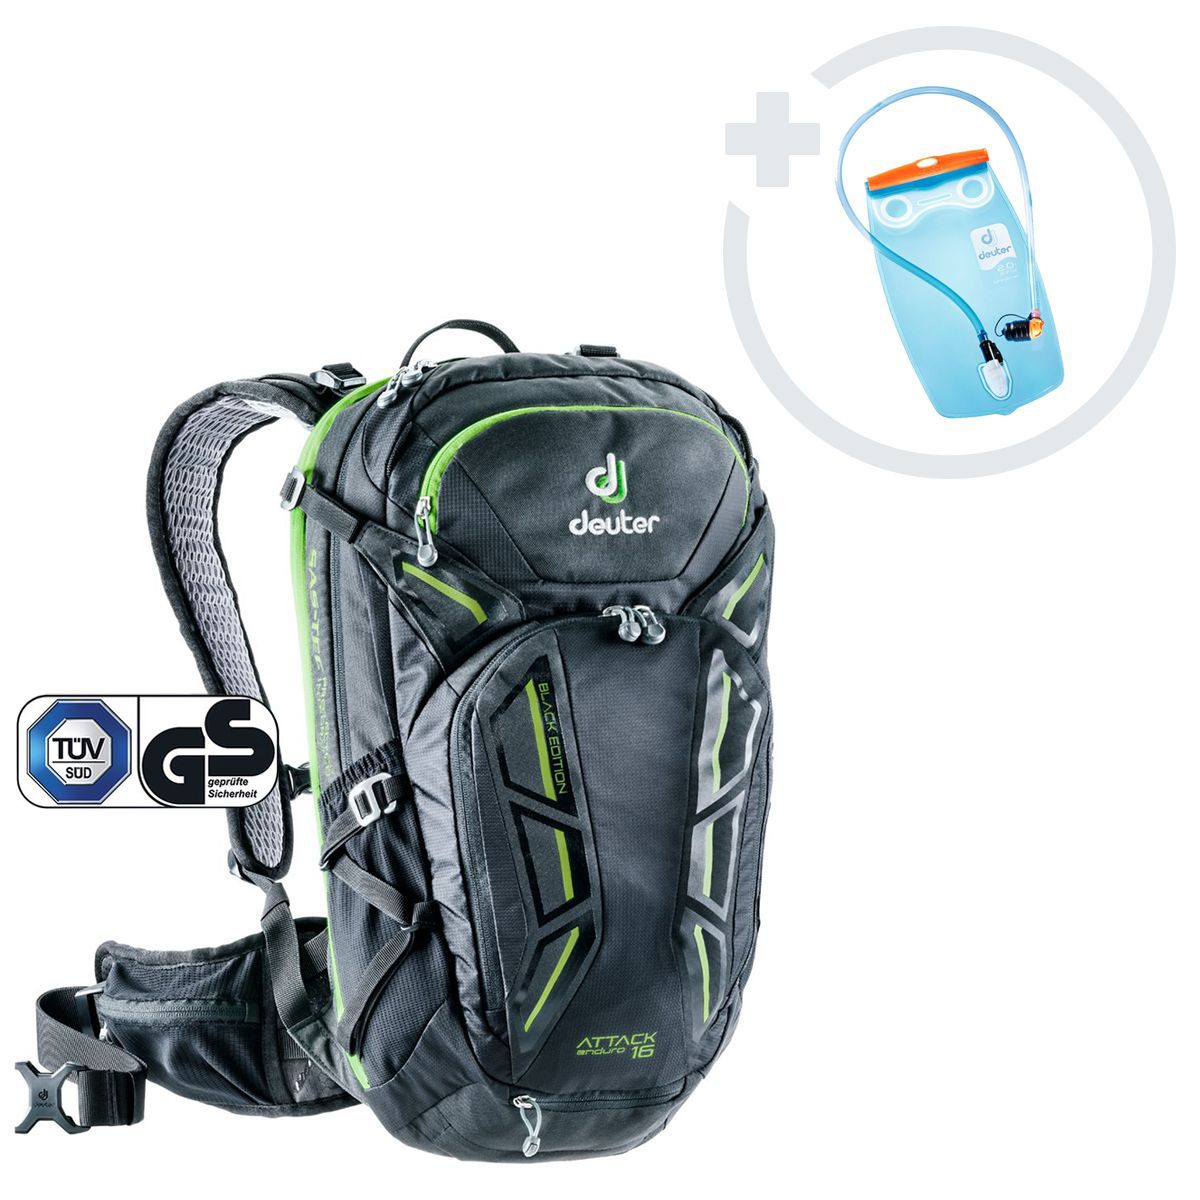 ATTACK ENDURO 16 BLACK EDITION Backpack Incl. Streamer 2l Hydration Bladder